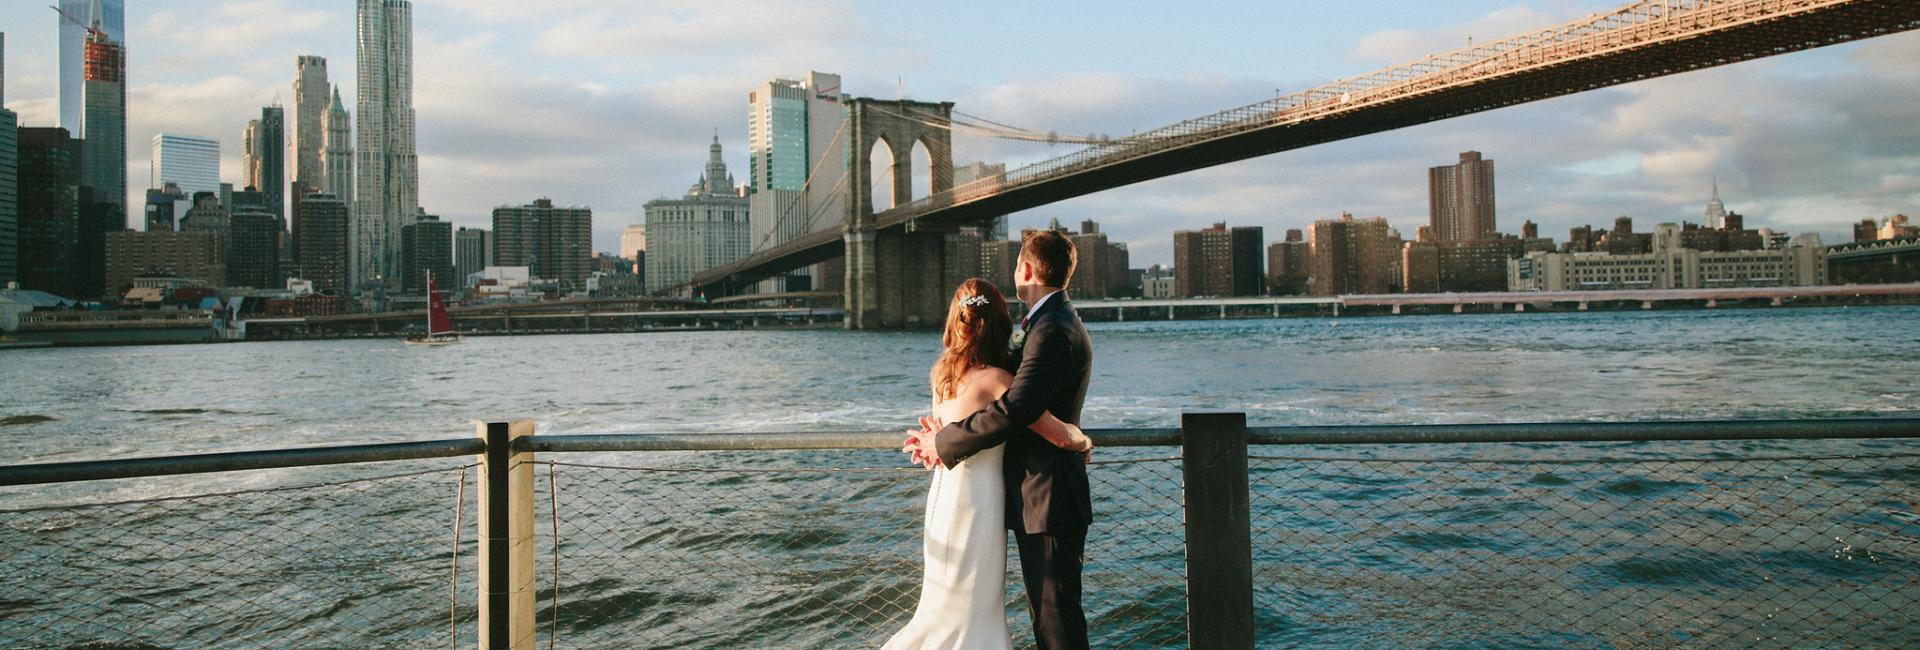 Couple stands on waterfront near brooklyn bridge in wedding attire